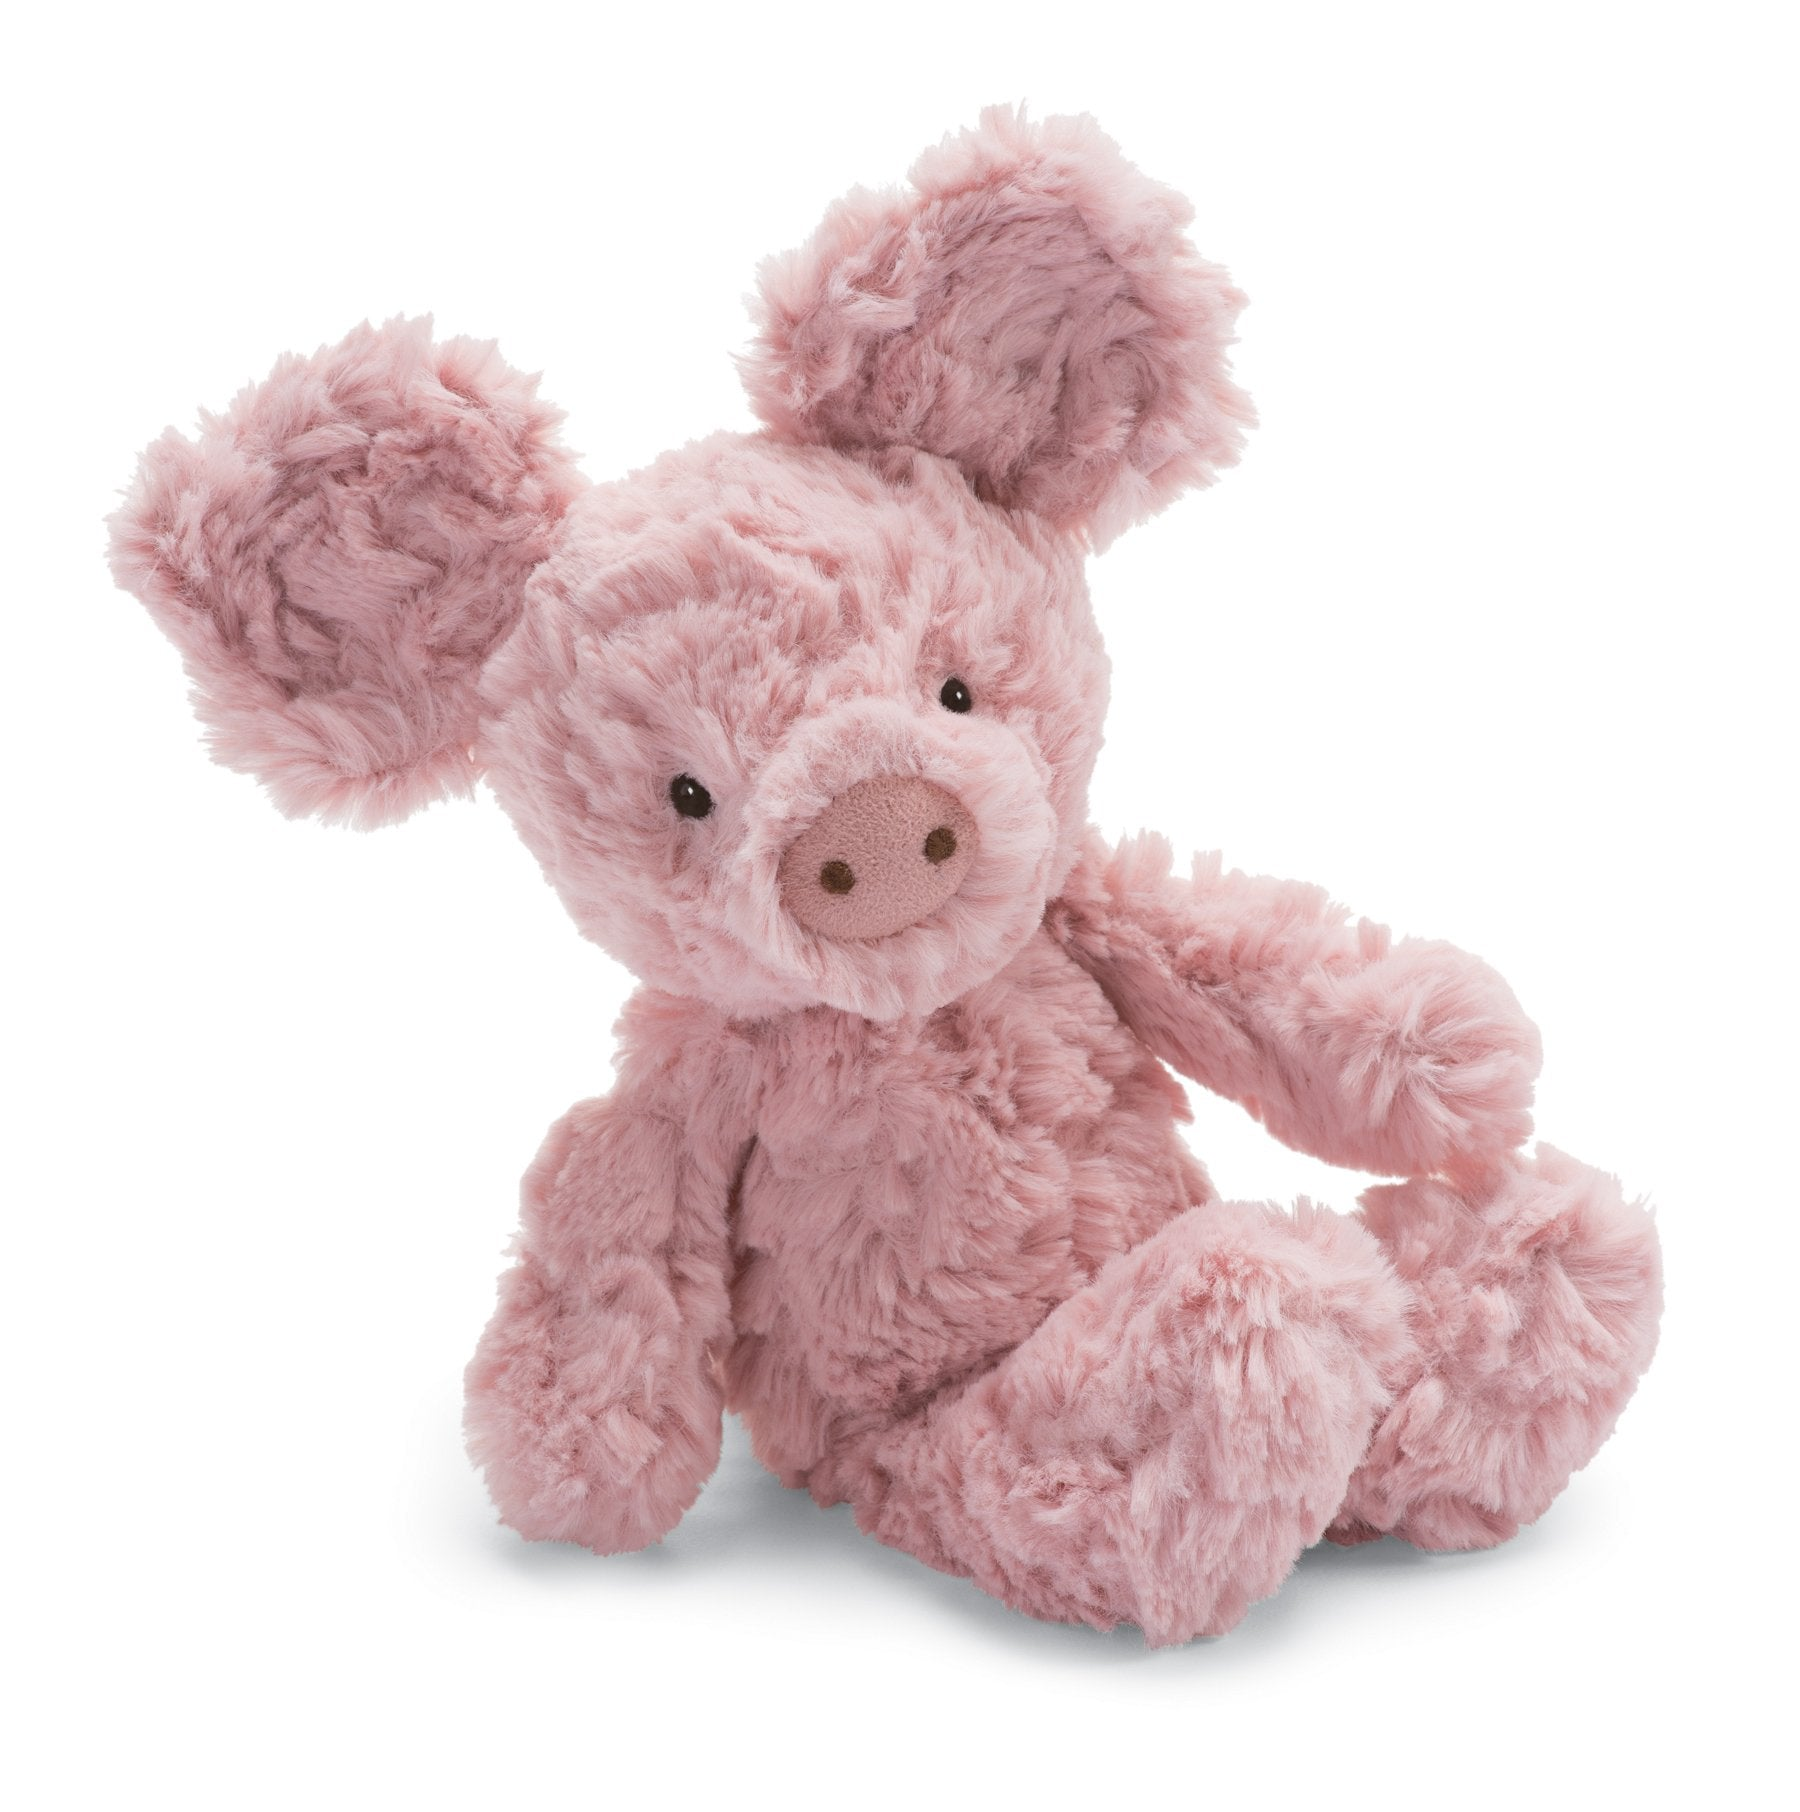 Jellycat Squiggle Pig Stuffed Animal, Small, 9 inches - WishBasket